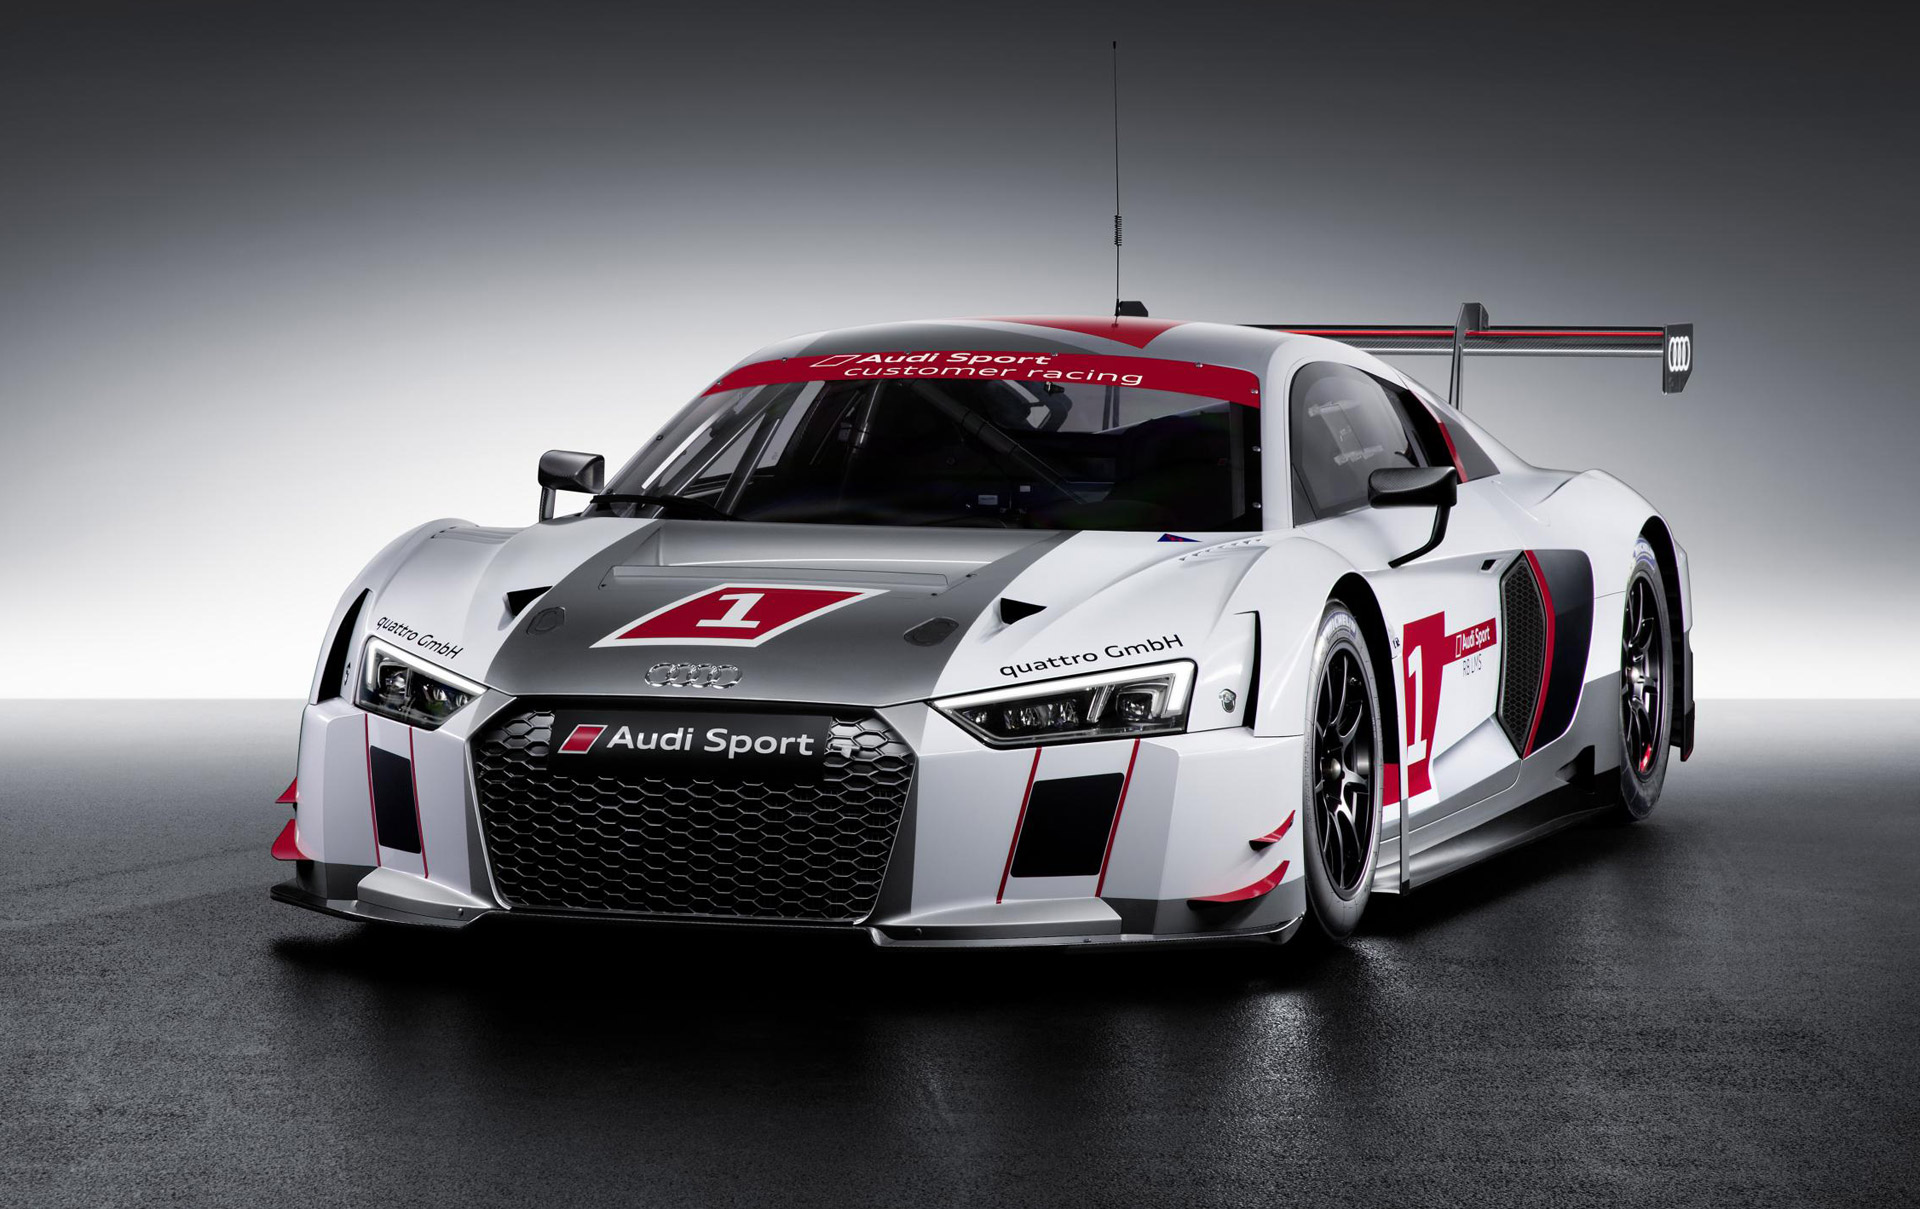 2016 audi r8 lms race car debuts at 2015 geneva motor show. Black Bedroom Furniture Sets. Home Design Ideas